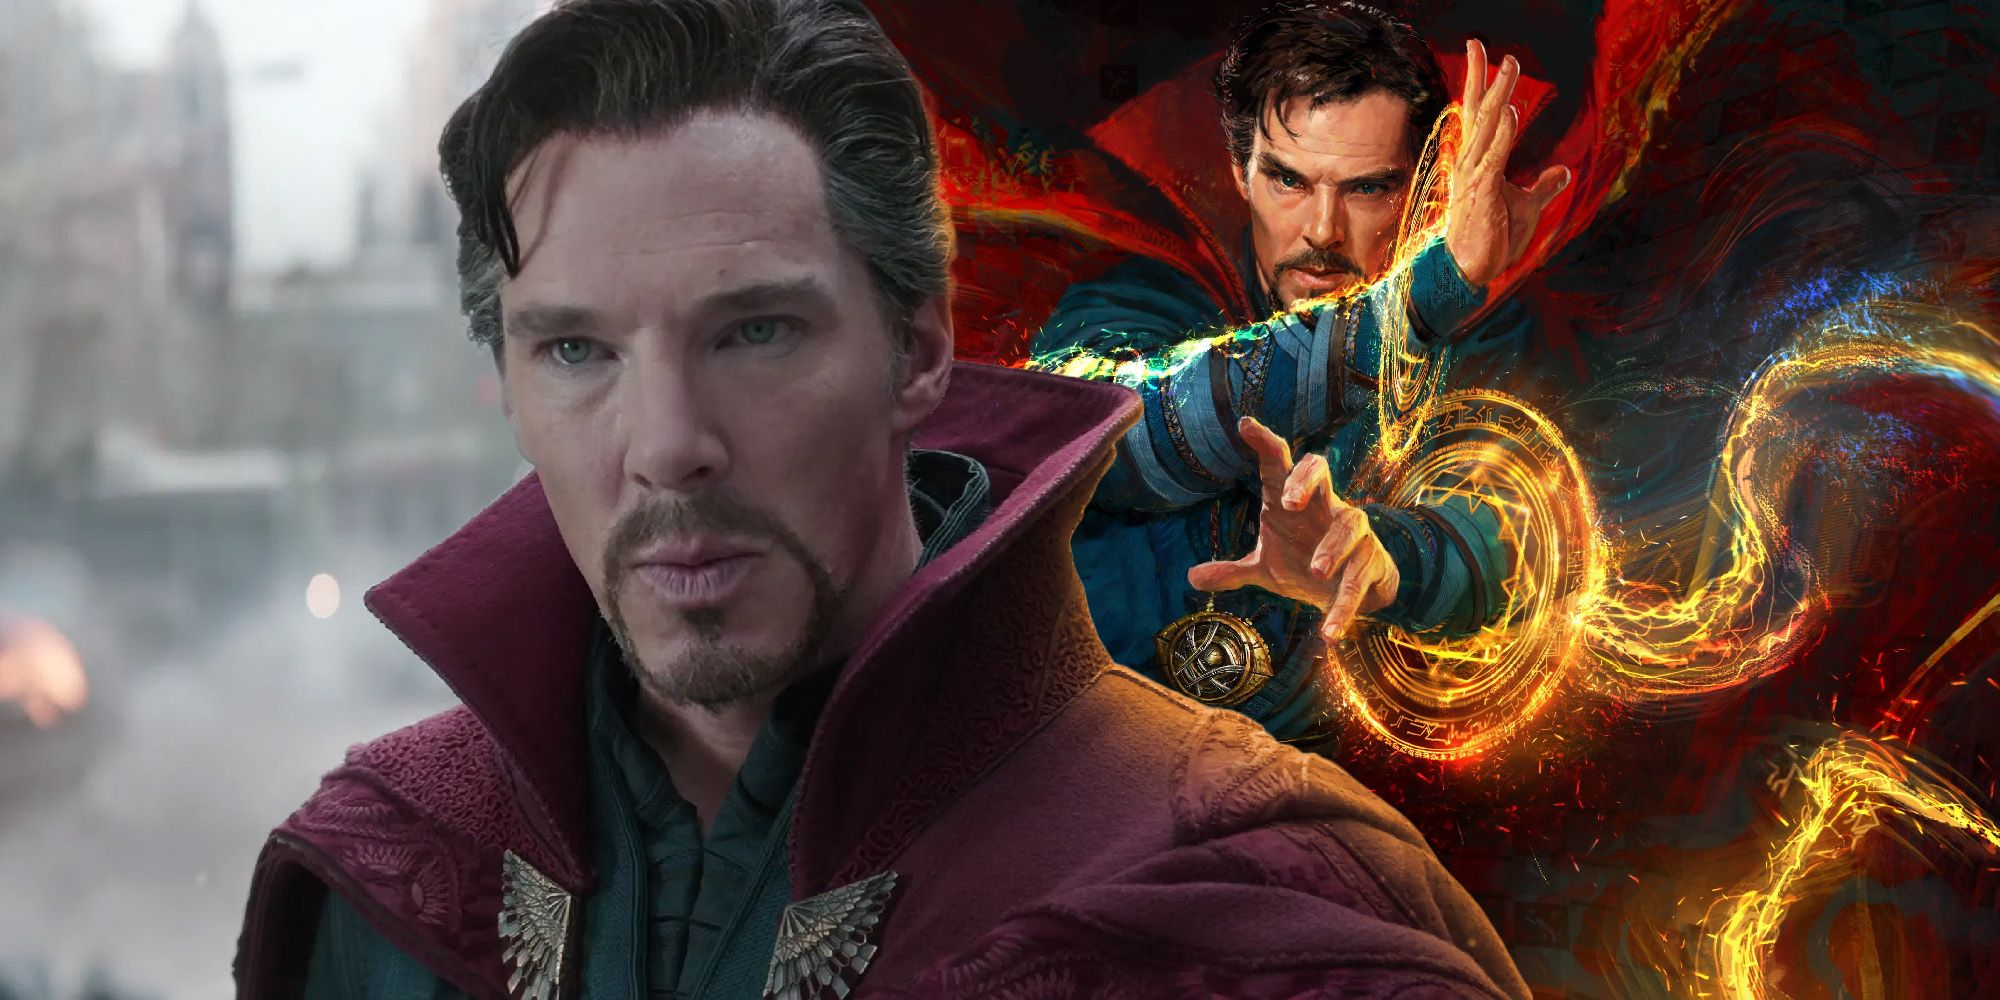 It would be more appropriate if he would have chosen sorcerer supreme as the successor